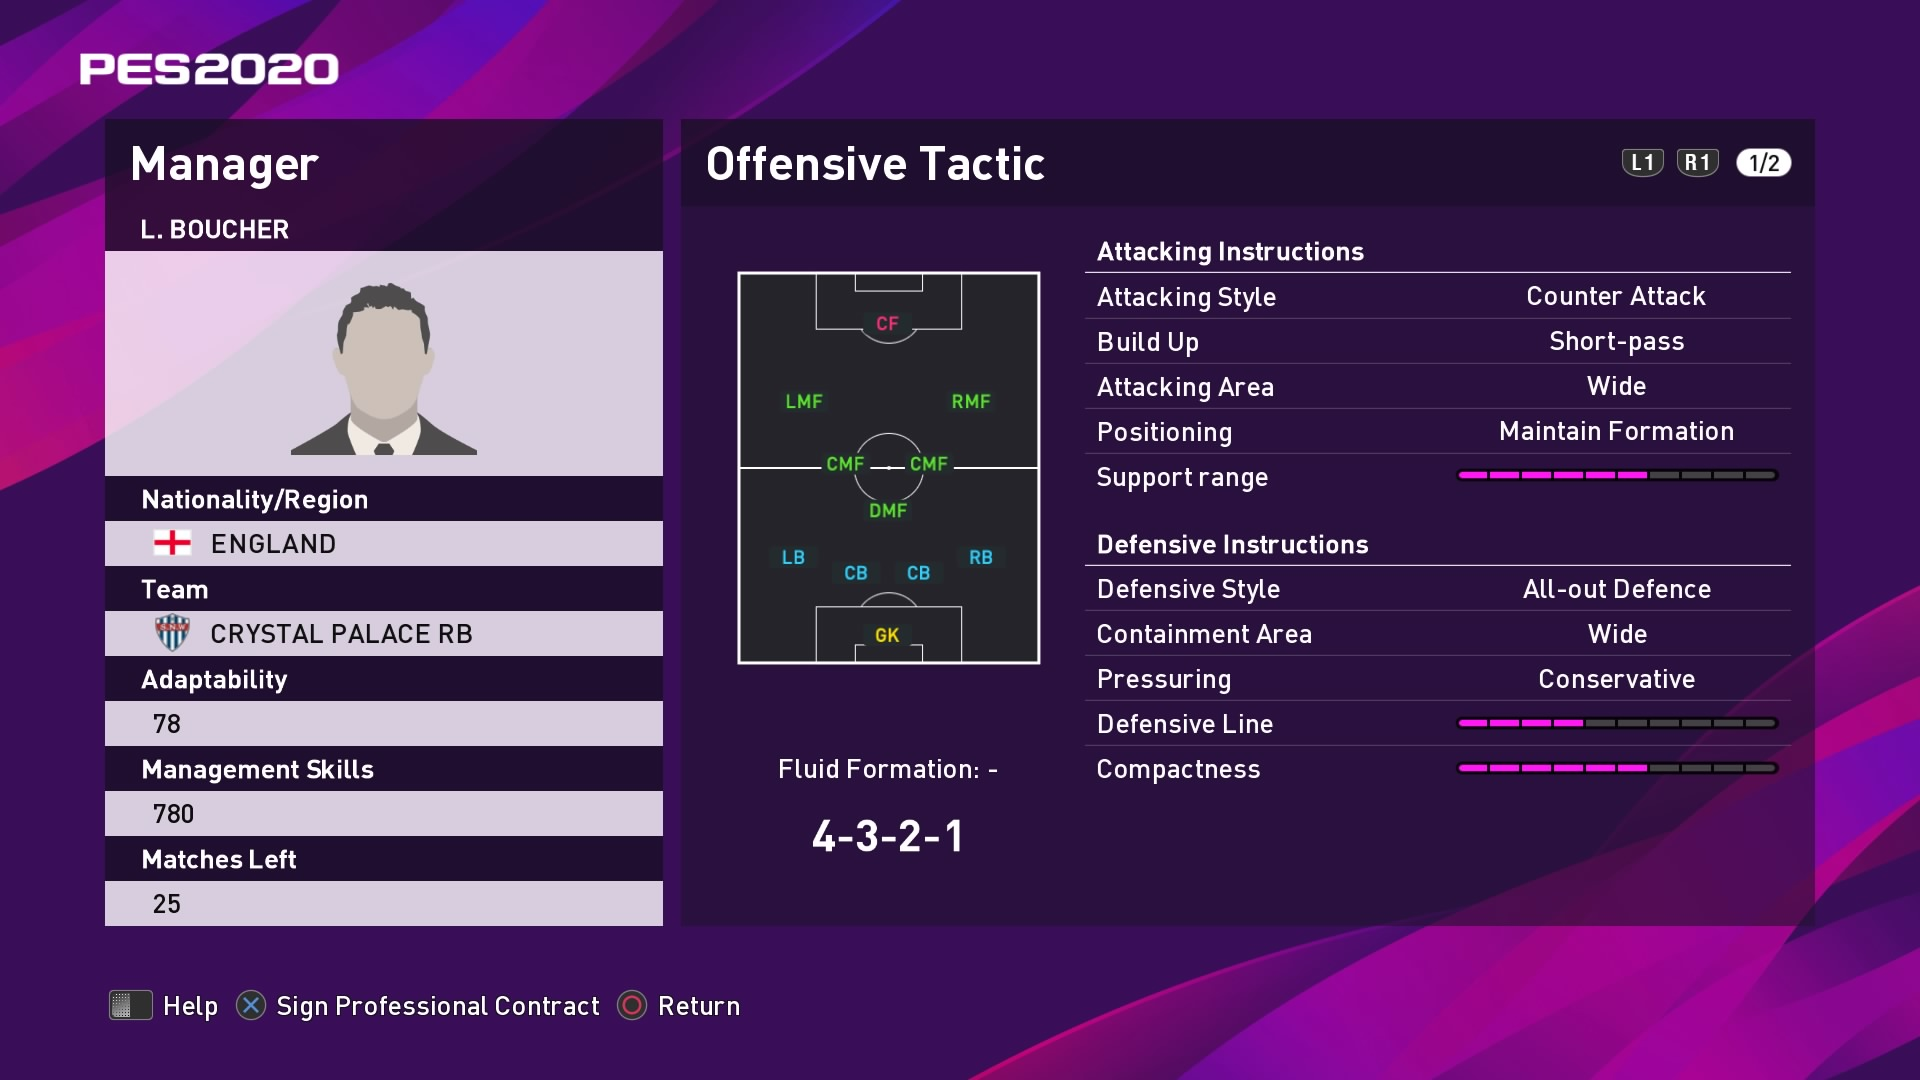 L. Boucher (Roy Hodgson) Offensive Tactic in PES 2020 myClub